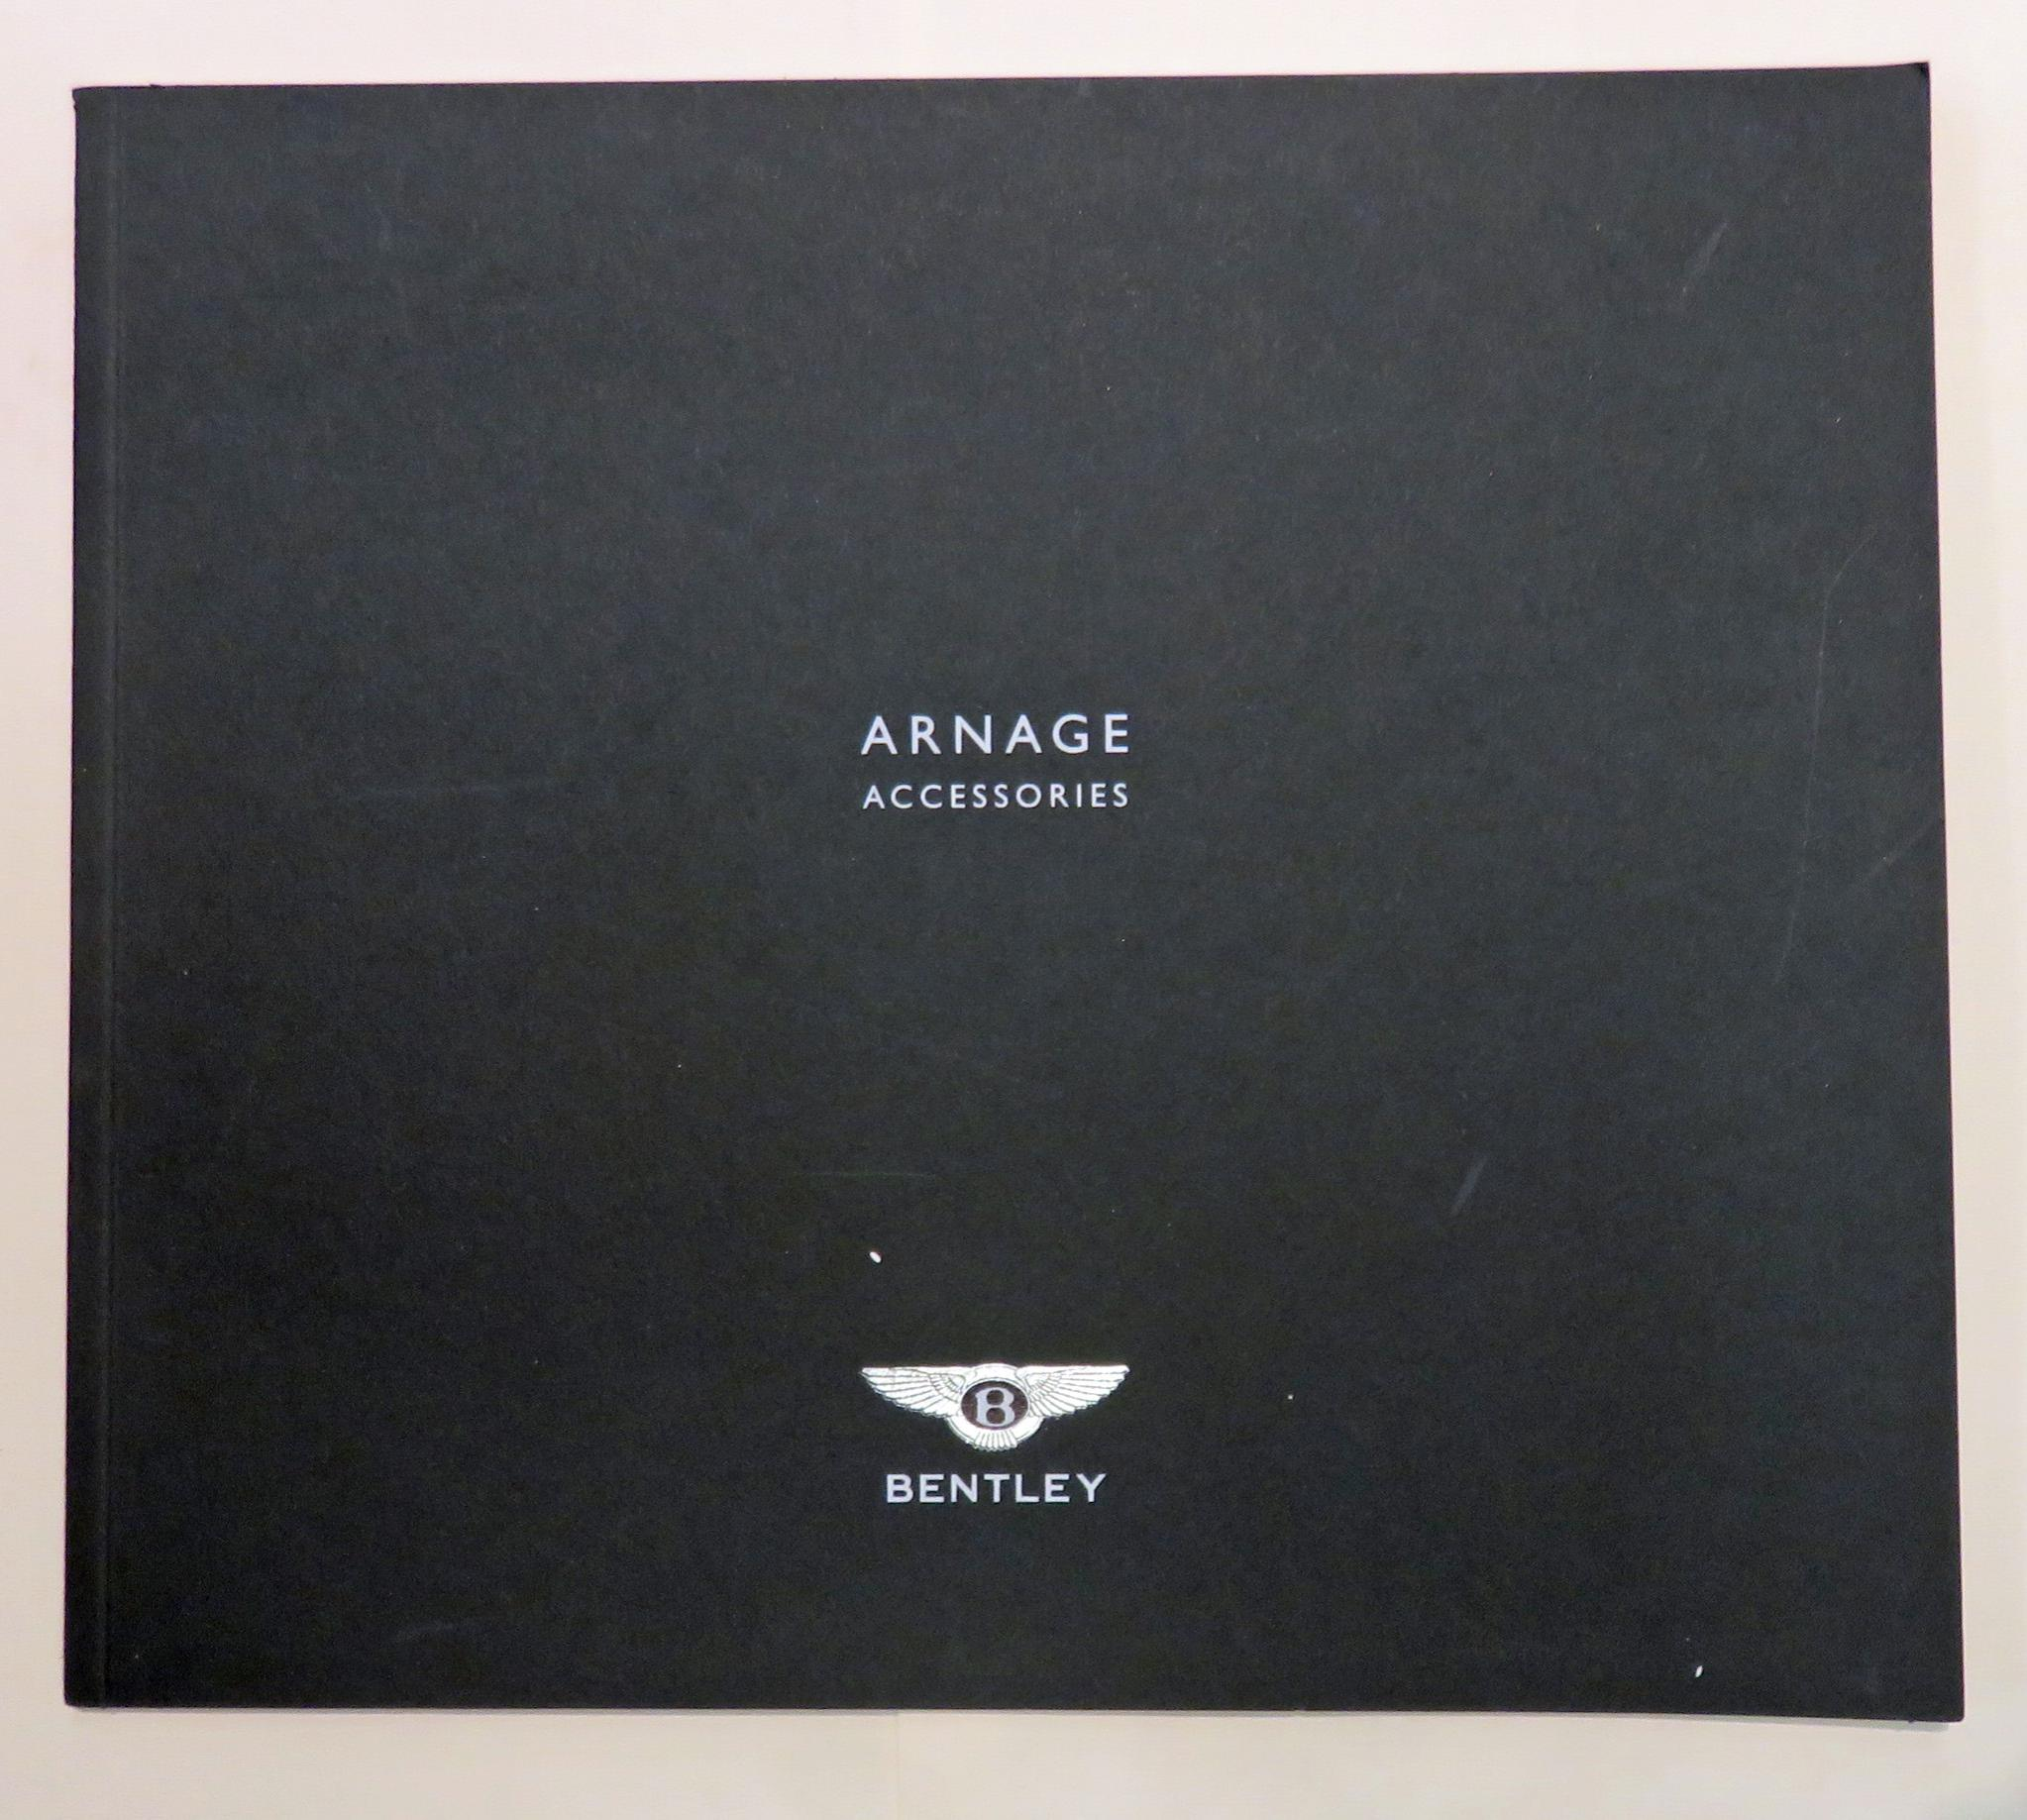 Arnage Accessories